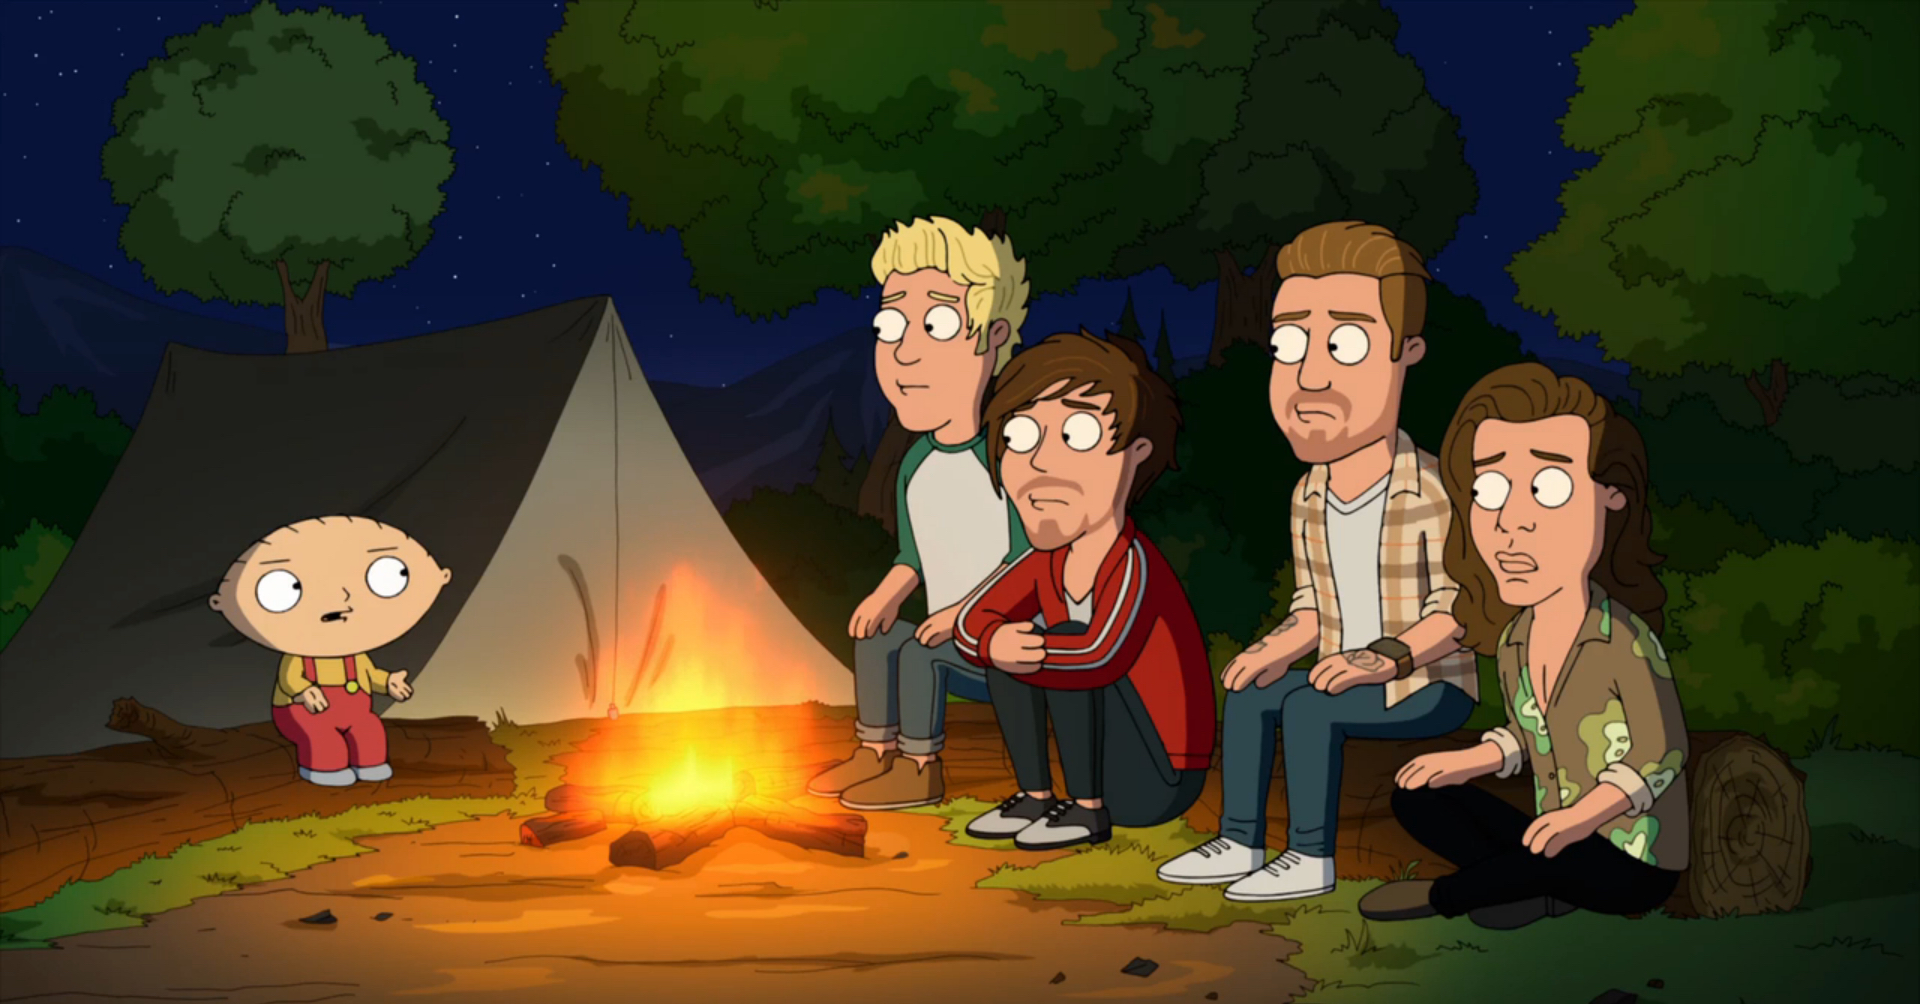 Watch One Direction S Family Guy Appearance Rolling Stone Cherry chevapravatdumrong ve diğer tanıdıklarınla iletişim kurmak için facebook'a katıl. family guy appearance